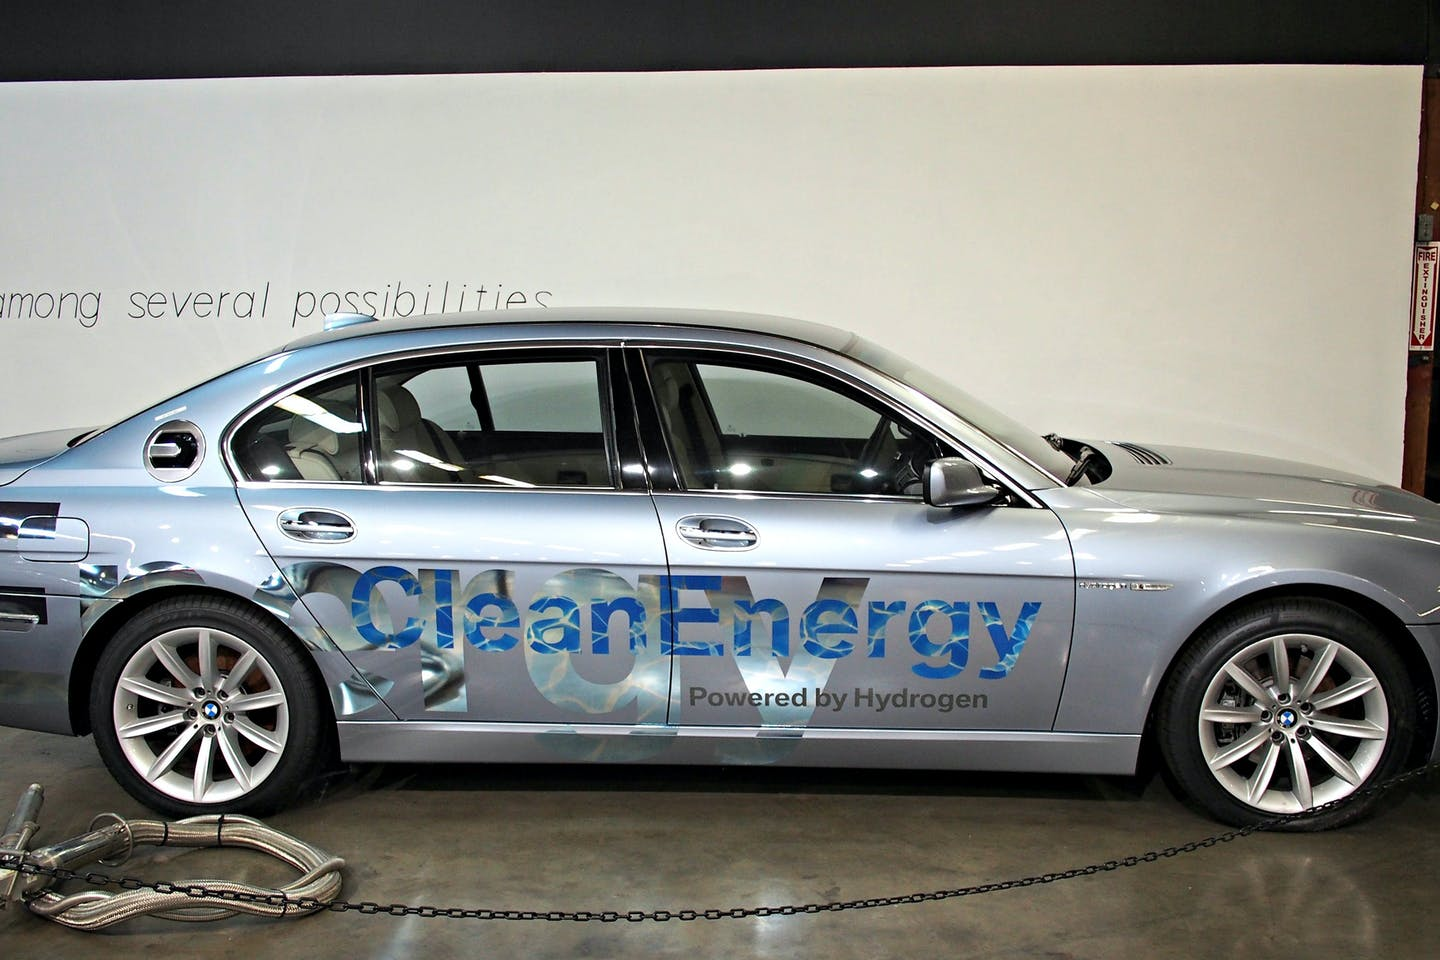 hydrogen-powered BMW